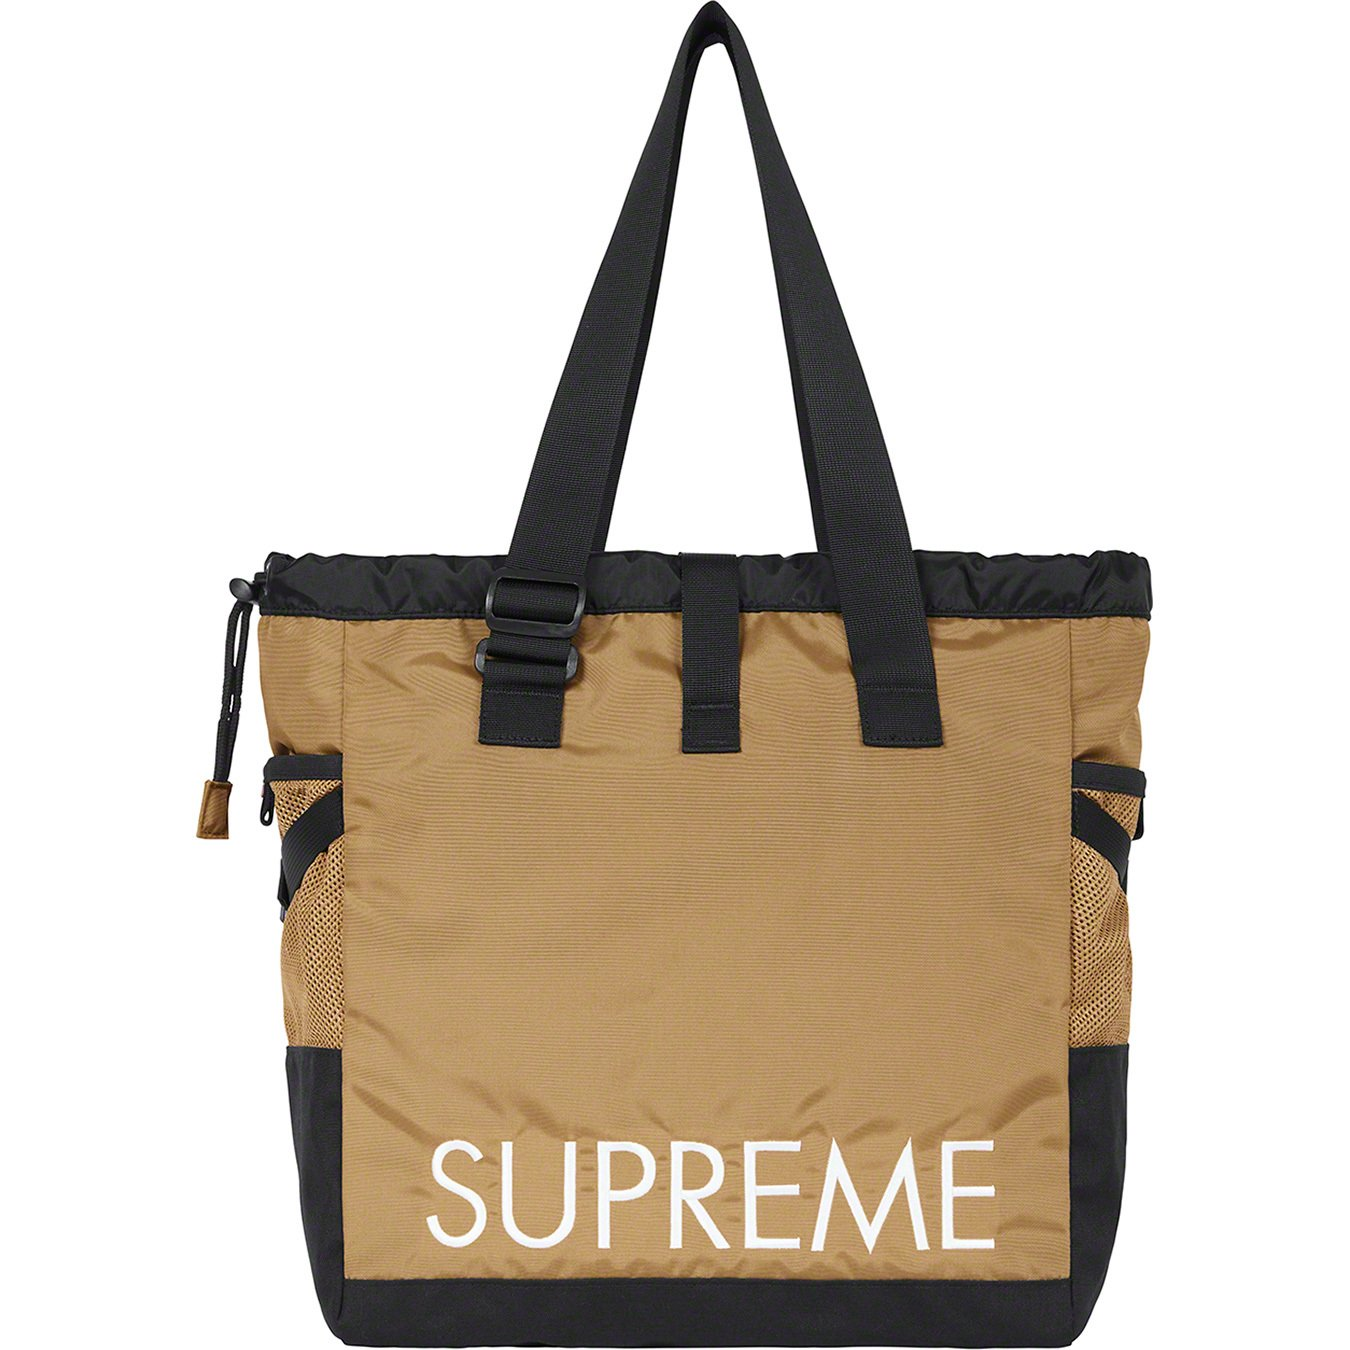 supreme-the-north-face-20ss-part-2-collaboration-release-20200523-week13